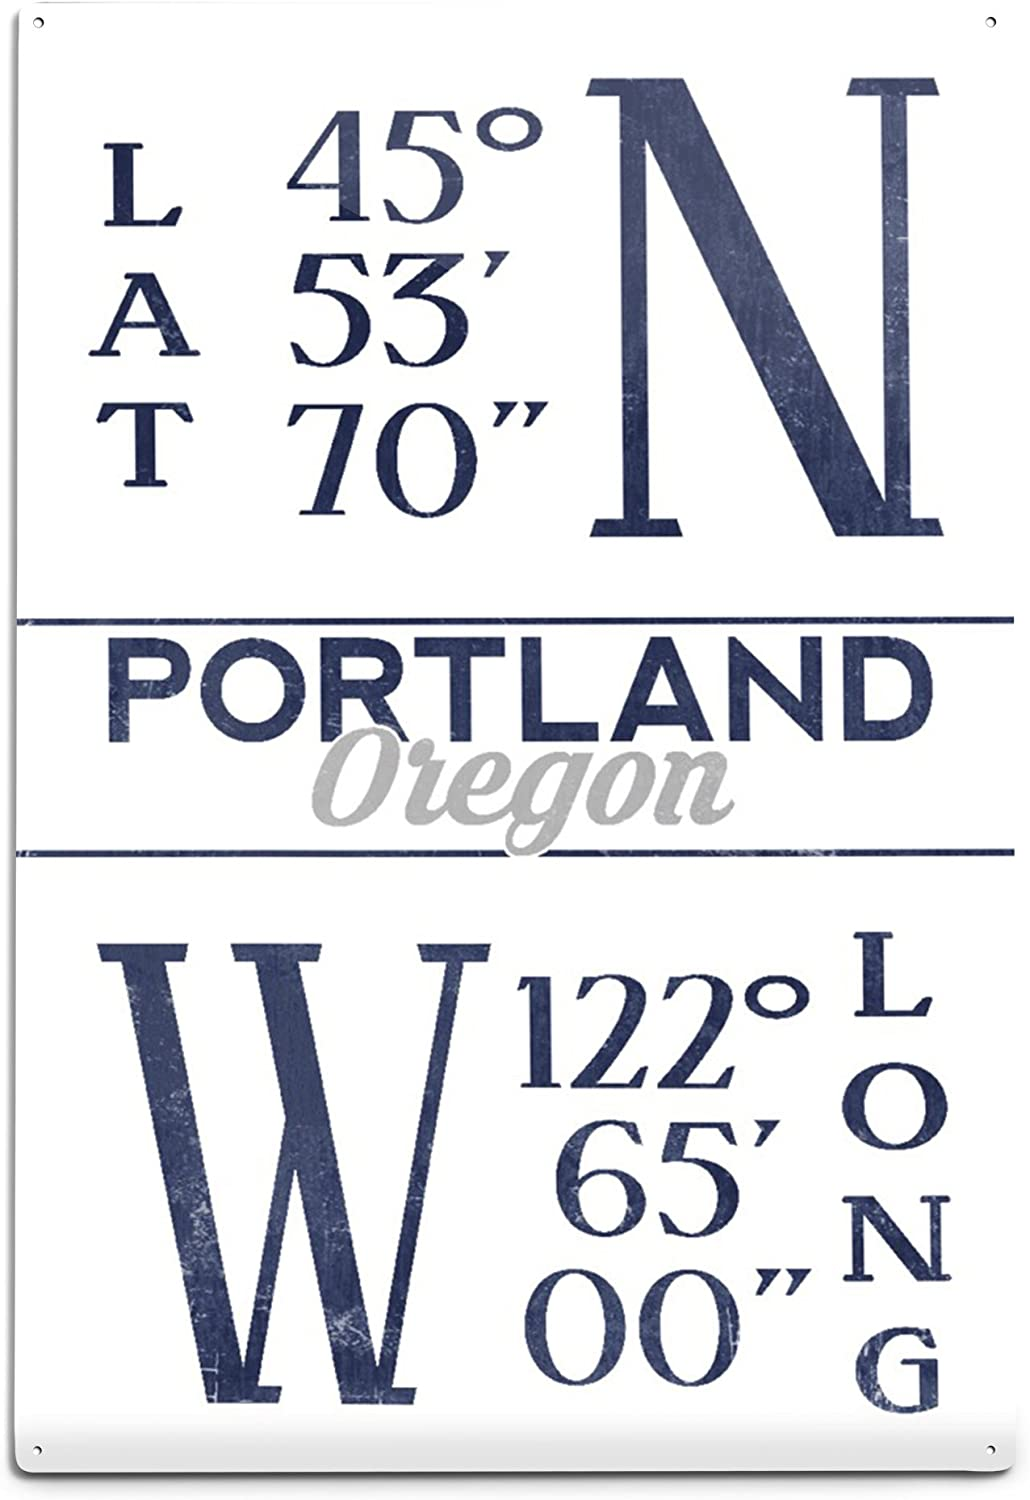 amazon com portland oregon latitude and longitude blue 24x36 giclee gallery print wall decor travel poster wall art portland oregon latitude and longitude blue 24x36 giclee gallery print wall decor travel poster